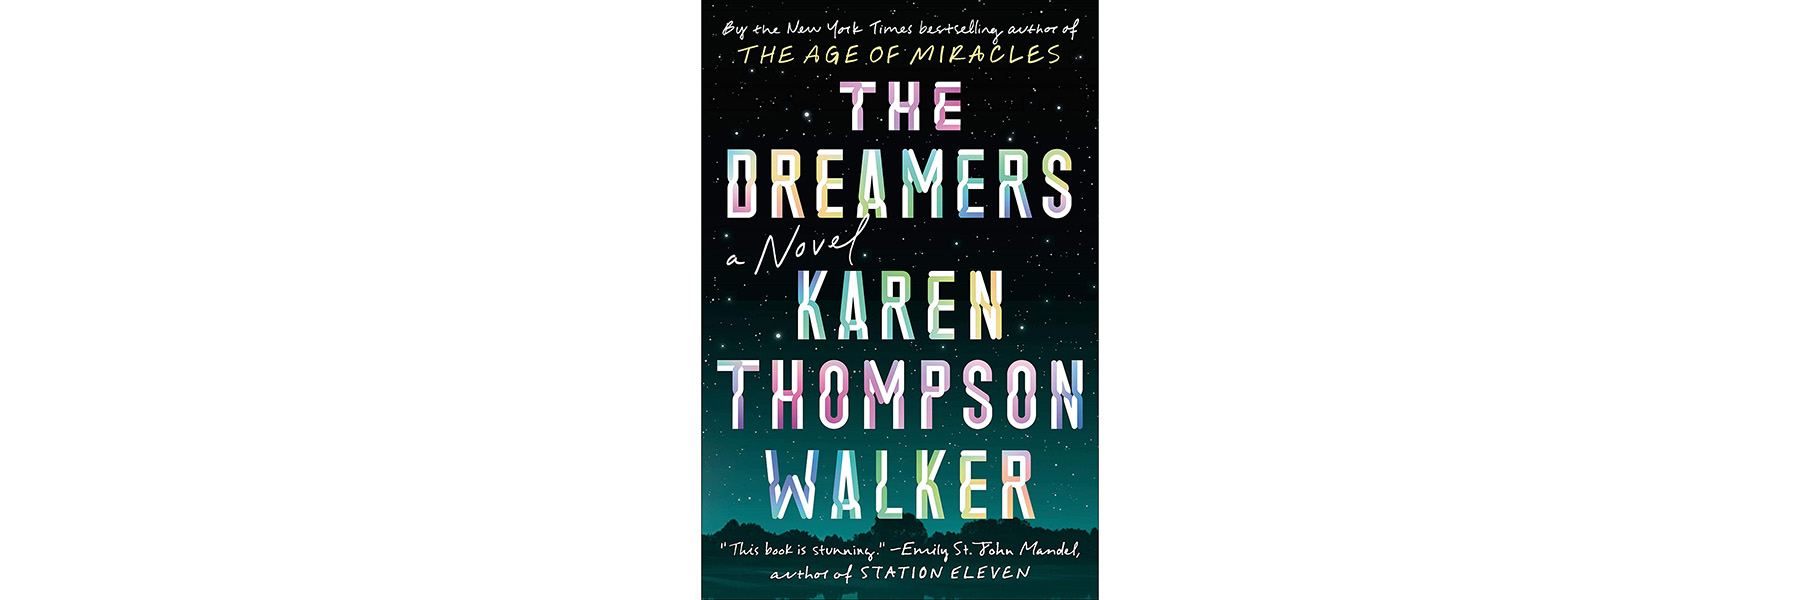 Cover of The Dreamers, by Karen Thompson Walker